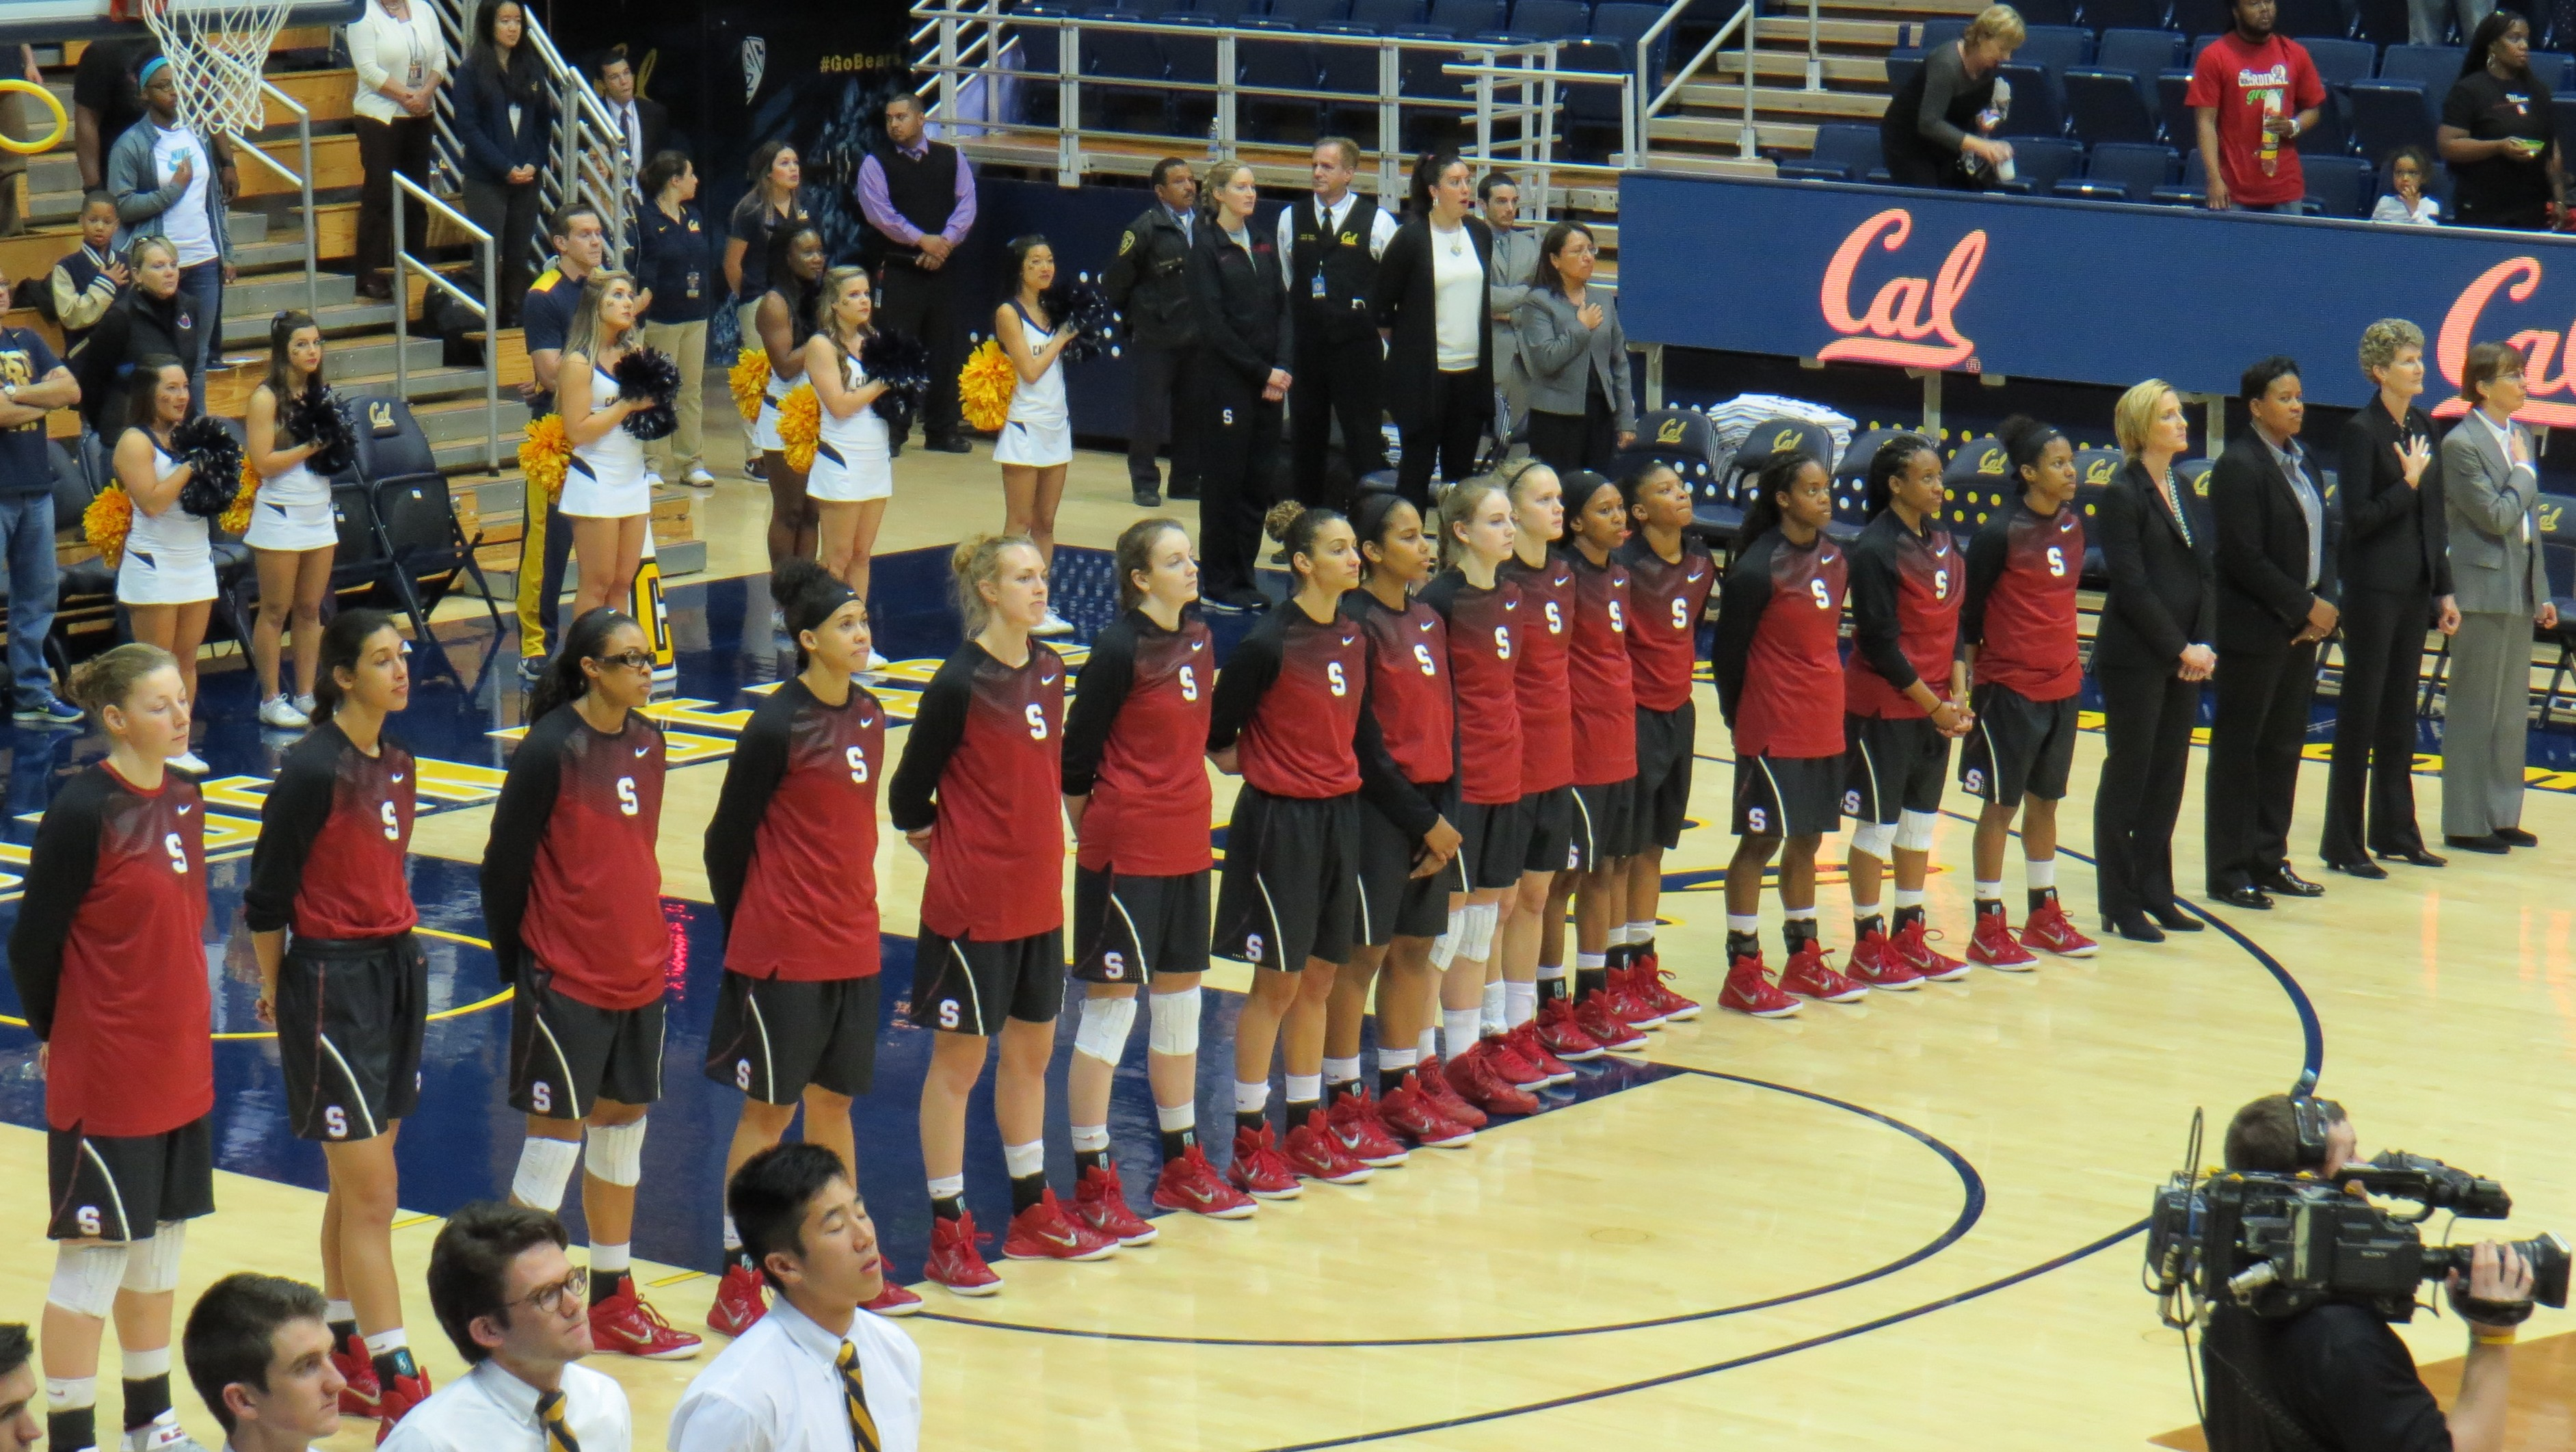 Second half rally and bench spark from Brittany McPhee propel No. 18 Stanford to 59-47 win over Cal